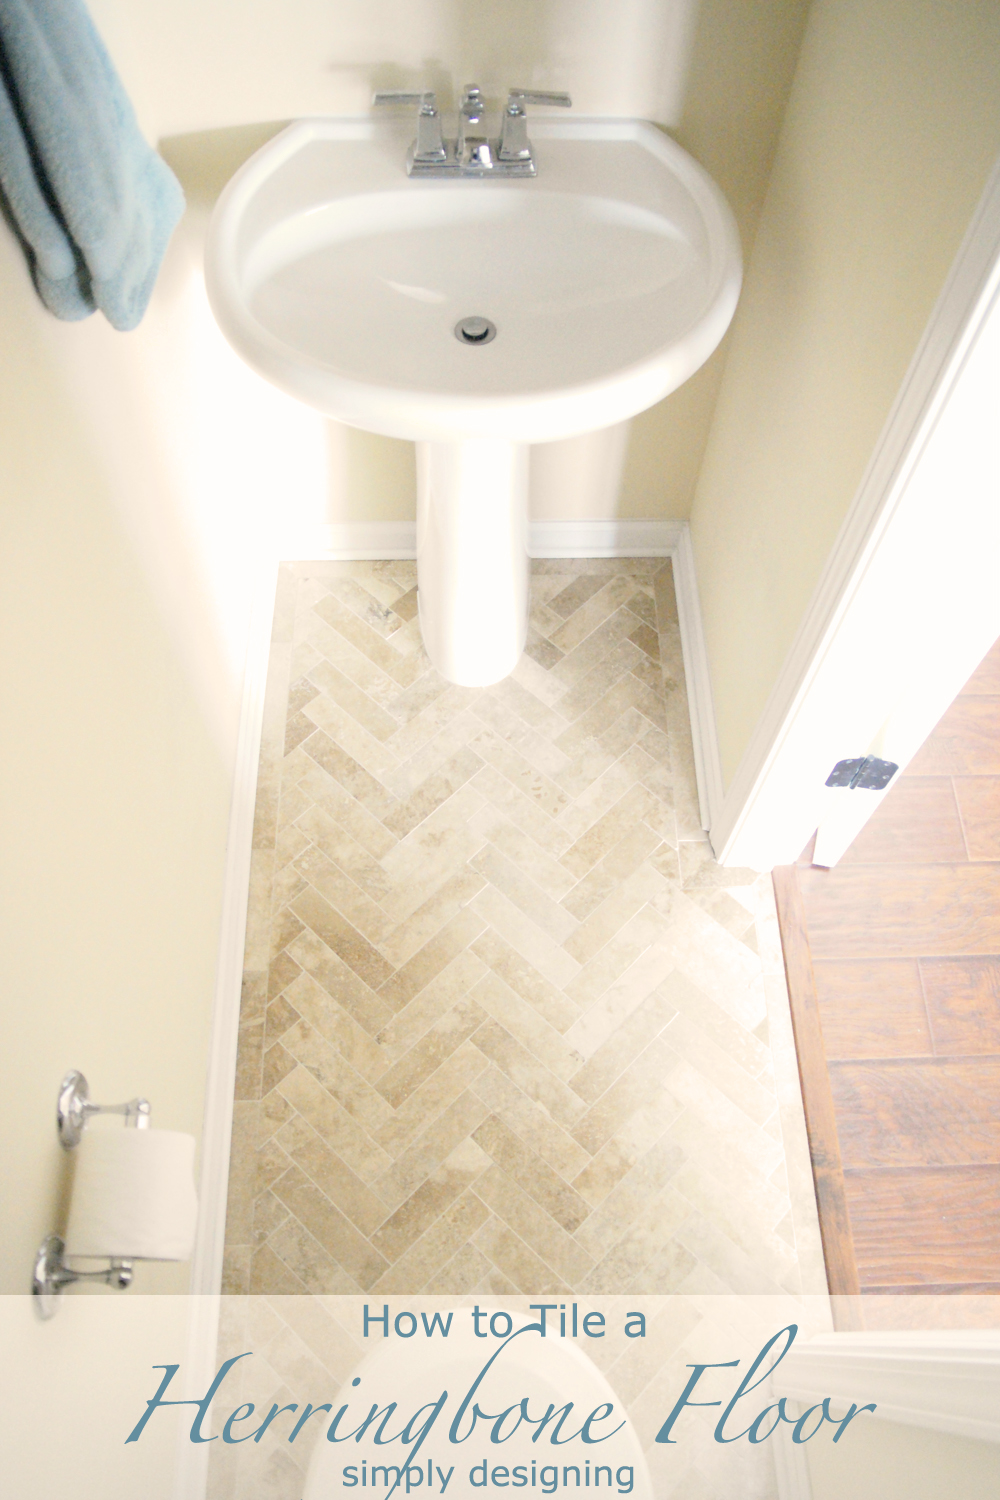 Herringbone tile floors diy tile thetileshop thetileshop how to install herringbone tile floors a complete tutorial for laying tile flooring and herringbone dailygadgetfo Image collections